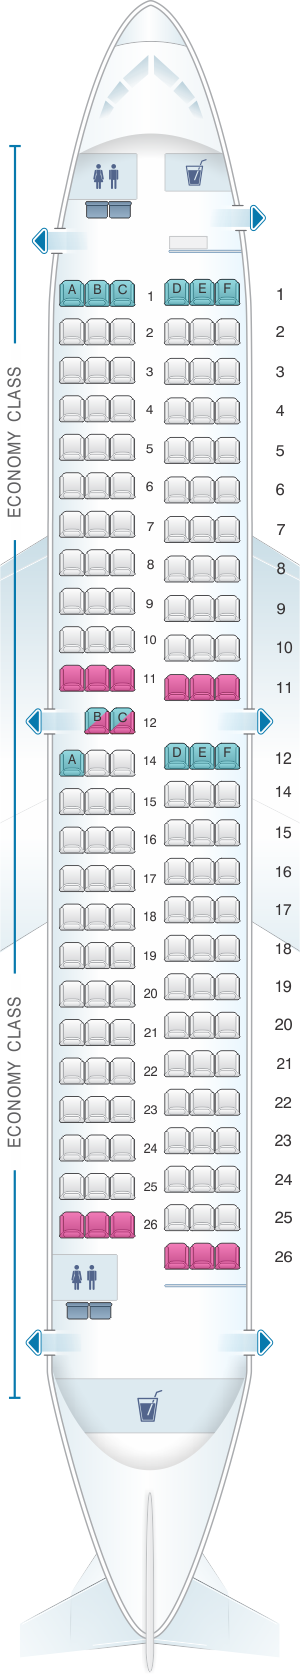 Seat map for ASL Airlines France Boeing B737-700